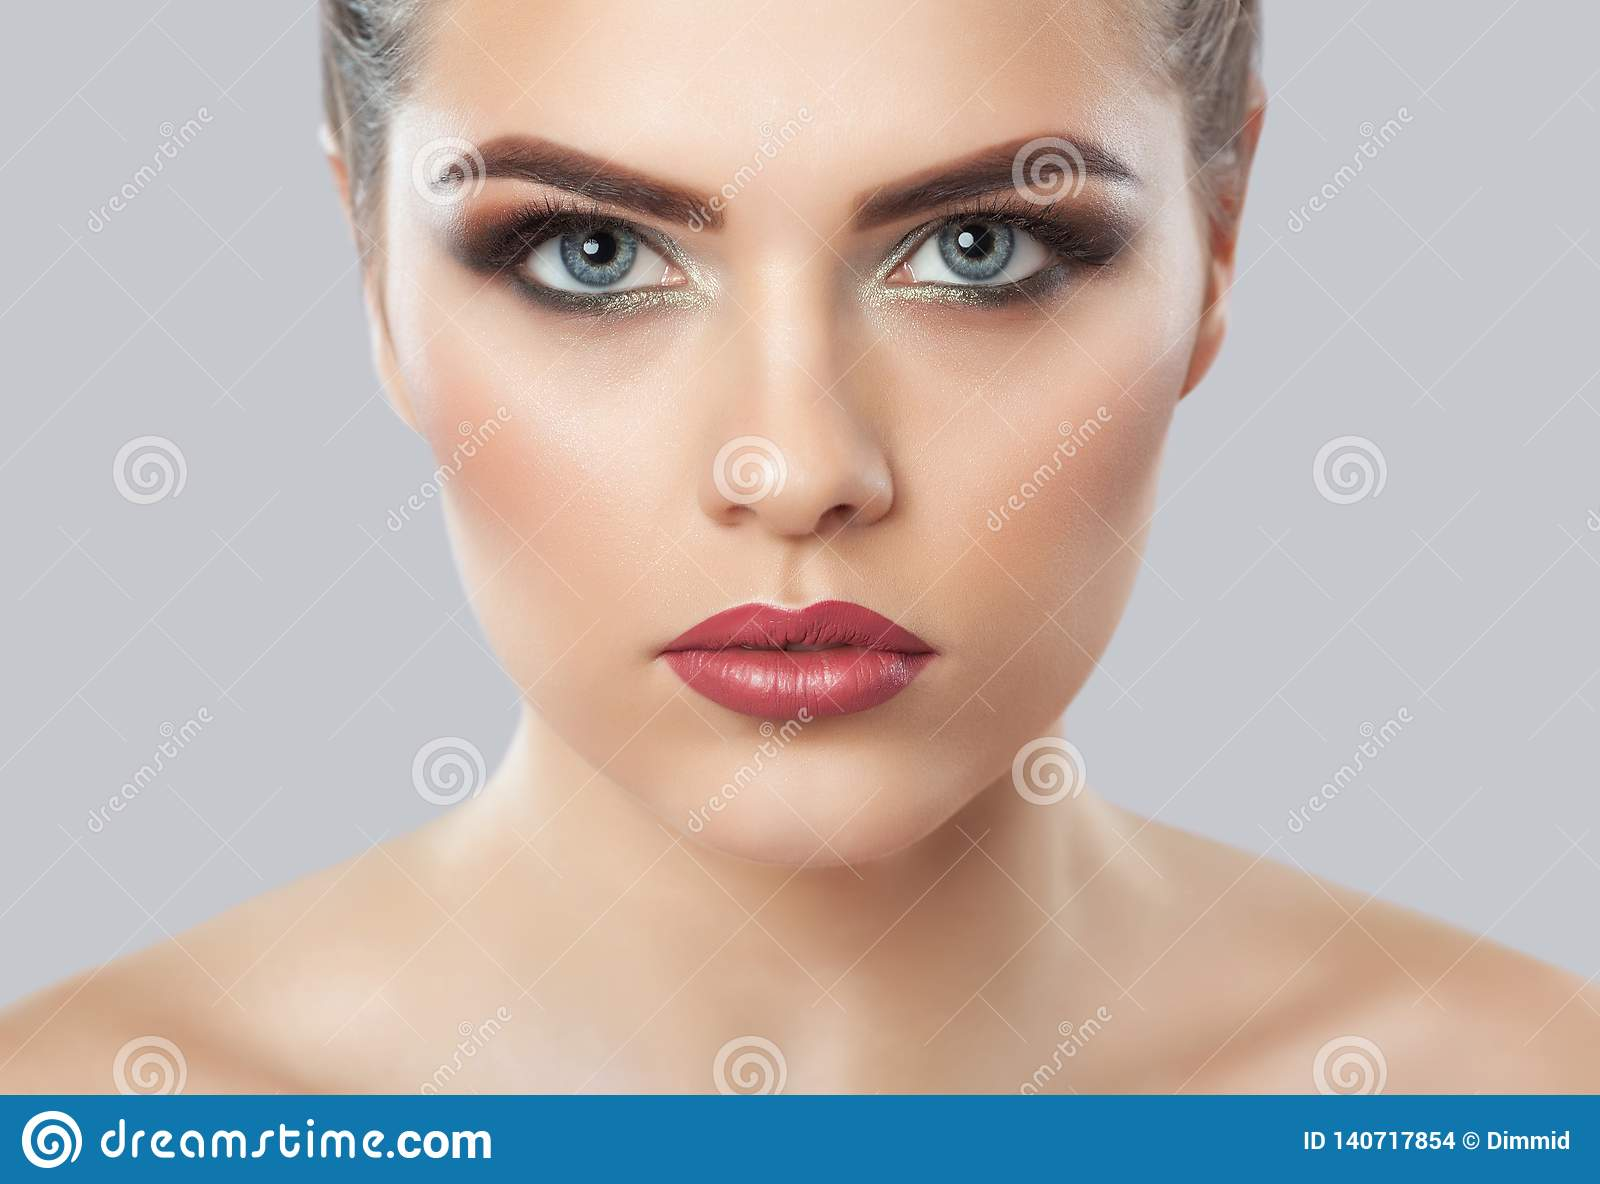 Portrait of a woman with beautiful make-up. Professional makeup and skin care